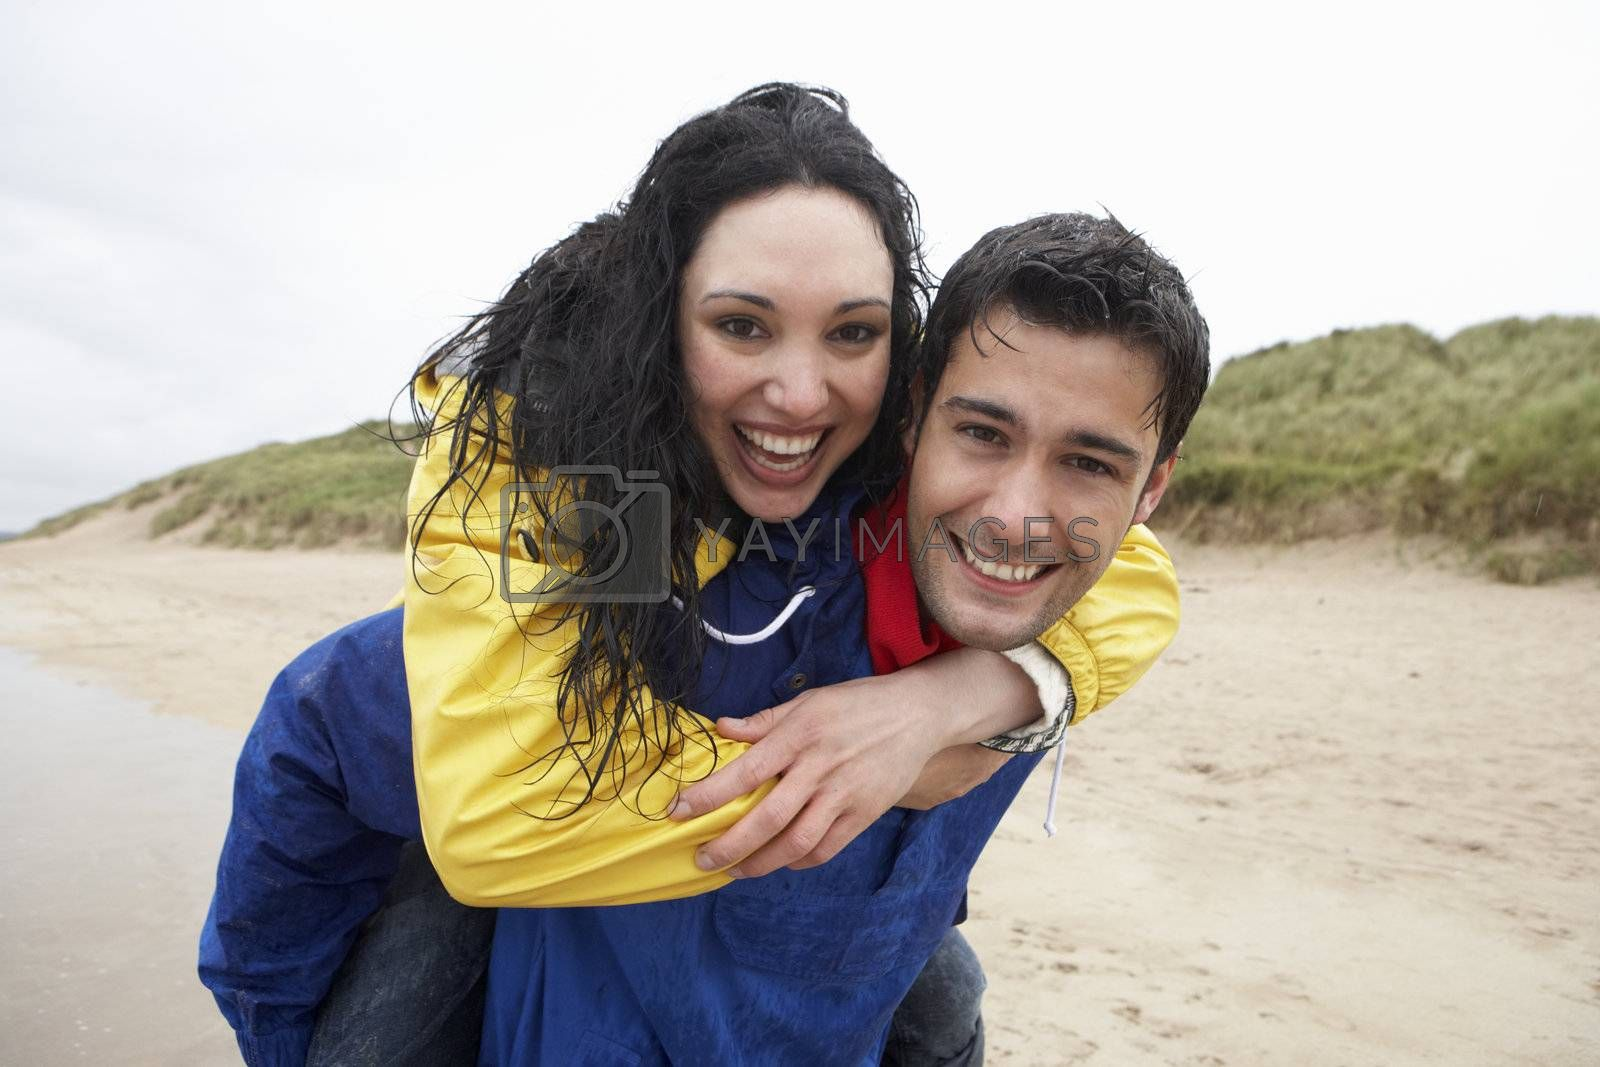 Royalty free image of Happy couple on beach in love by omg_images